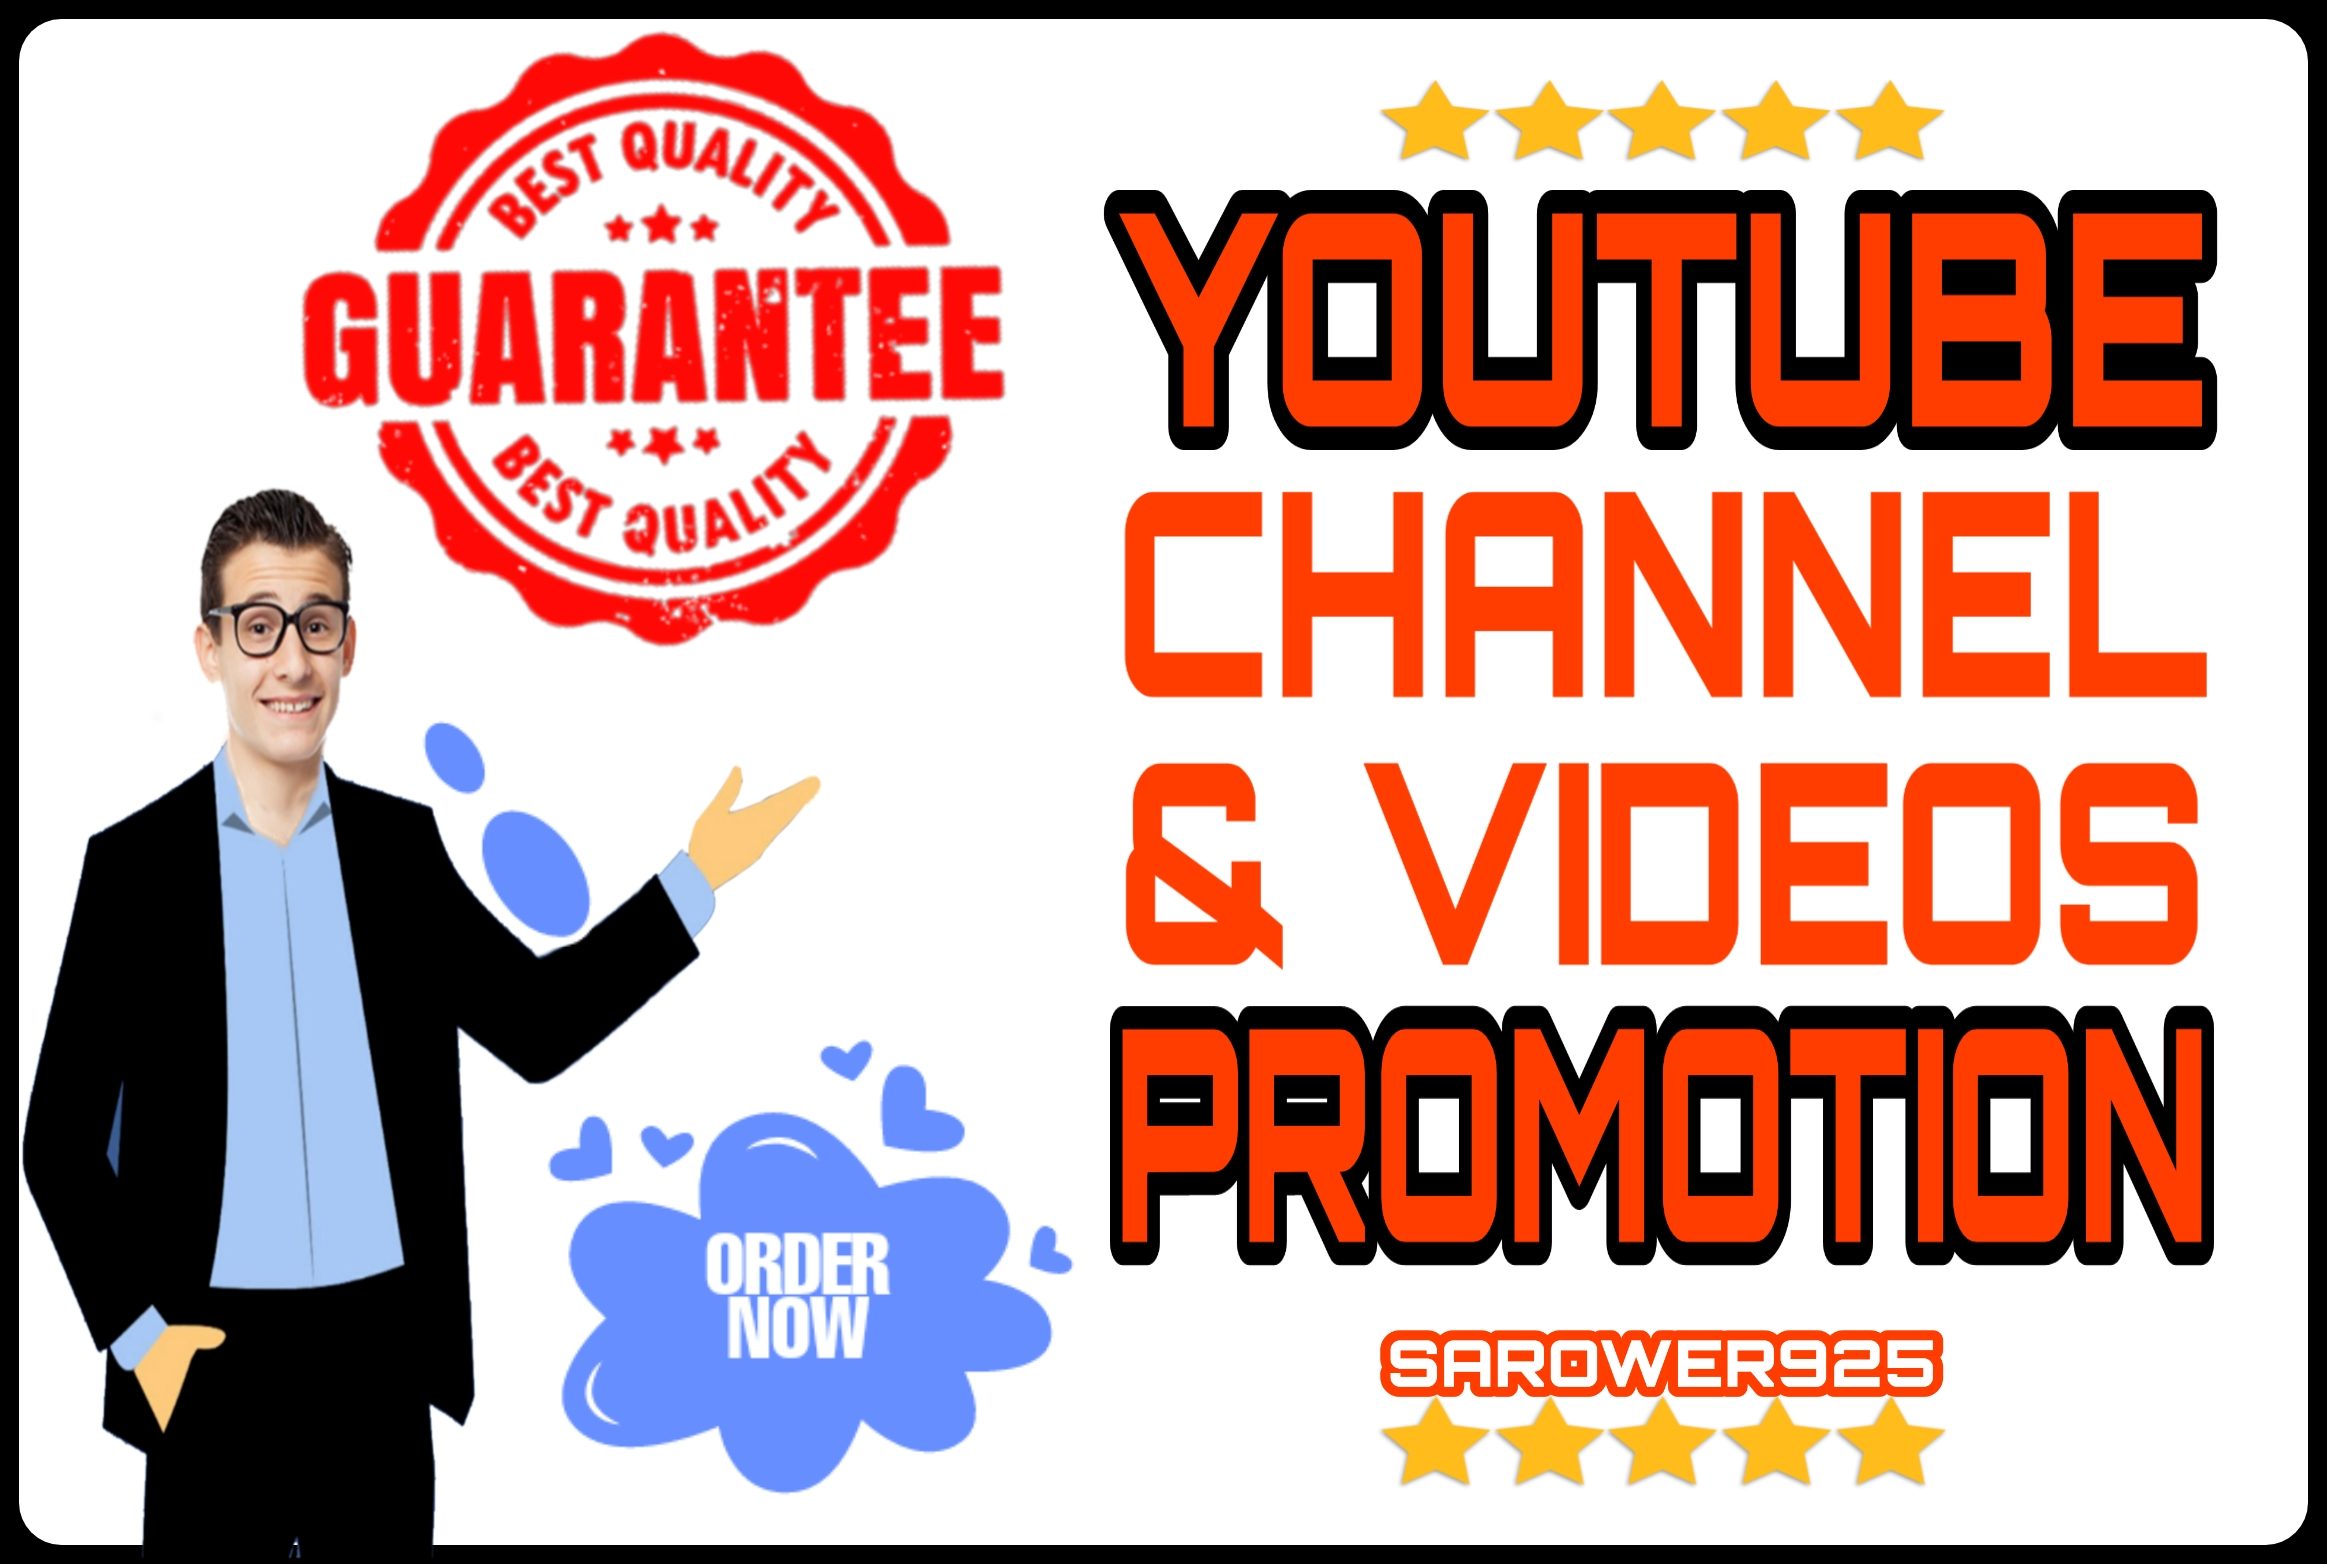 Youtube all promotion services in One service